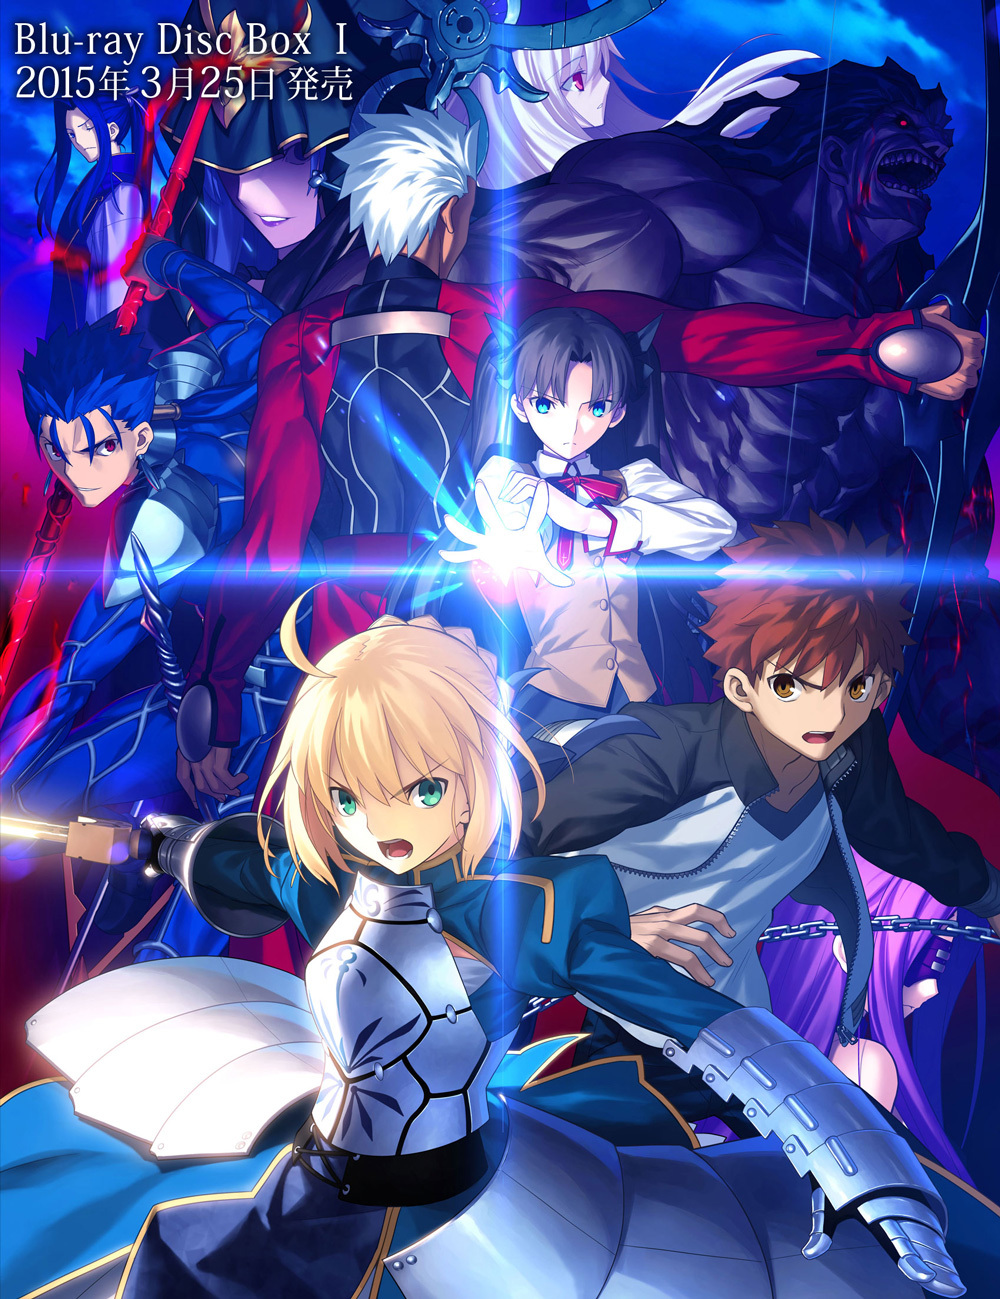 Fate-stay-night-Unlimited-Blade-Works-Blu-ray-Disc-Box-1-Visual1